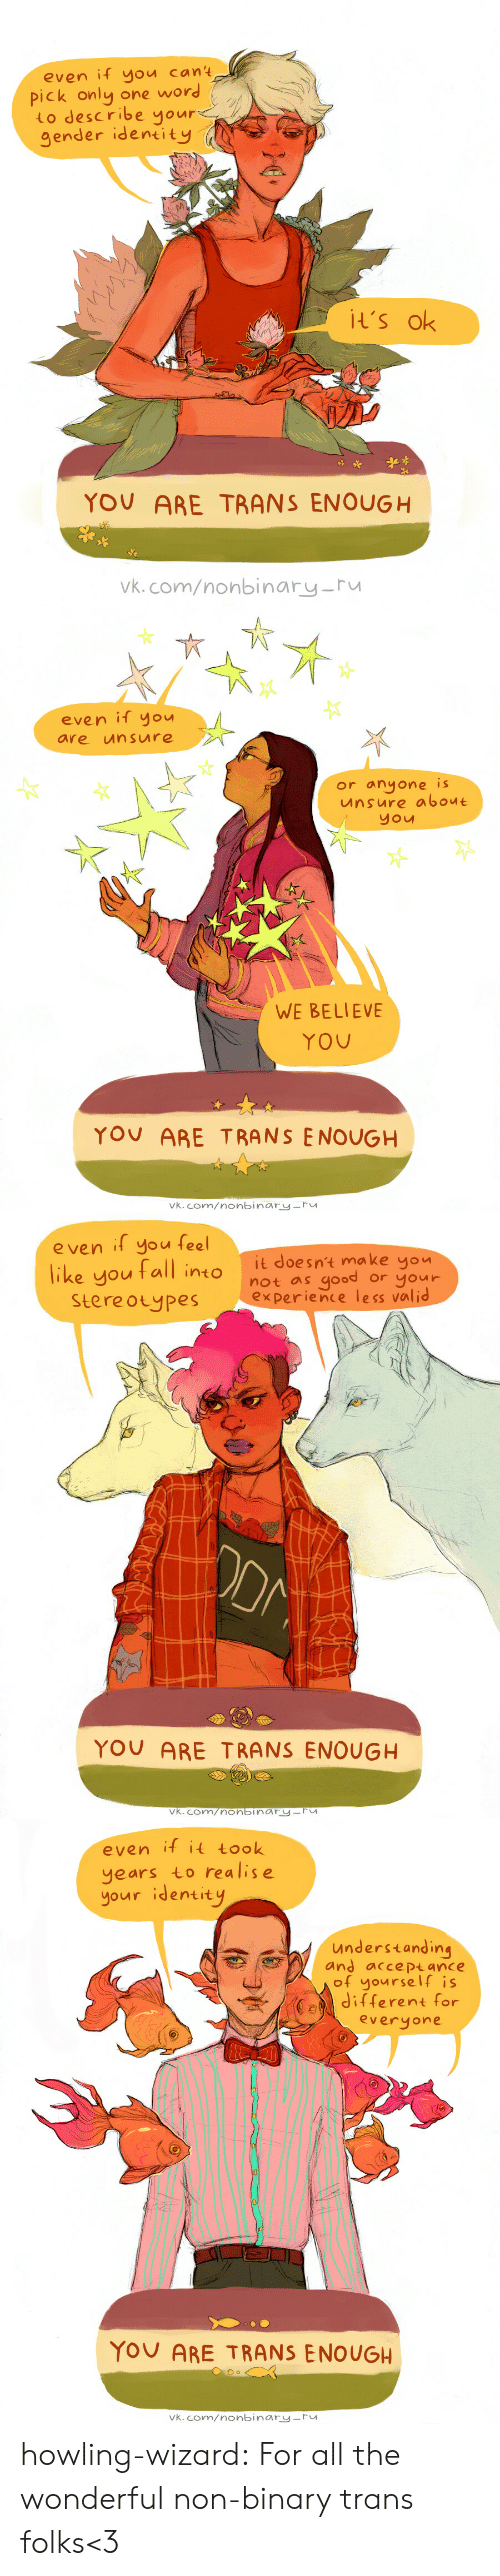 howling: even if you cant  one word  pick only  Lo describe yours  gender identity  It's ok  YOU ARE TRANS ENOUGH  Vk.com/nonbinary-ru   even if you  unsure  are  or anyone is  unsure about  you  WE BELIEVE  YOU  YOU ARE T RANS ENOUGH  vk.com/nonbinary-ru   e ven if you feel  it doesn't make you  like you tall into  Stereotypes  good  or your  not as  experience less valid  ODM  YOU ARE TRANS ENOUGH  vk.com/nonbinry-Fu   even if it took  years to realise  your identity  understanding  and acce Ptance  of yourself is  Jifferent for  everyone  YOU ARE TRANS ENOUGH  vk.com/nonbinary-ru howling-wizard:  For all the wonderful non-binary trans folks<3